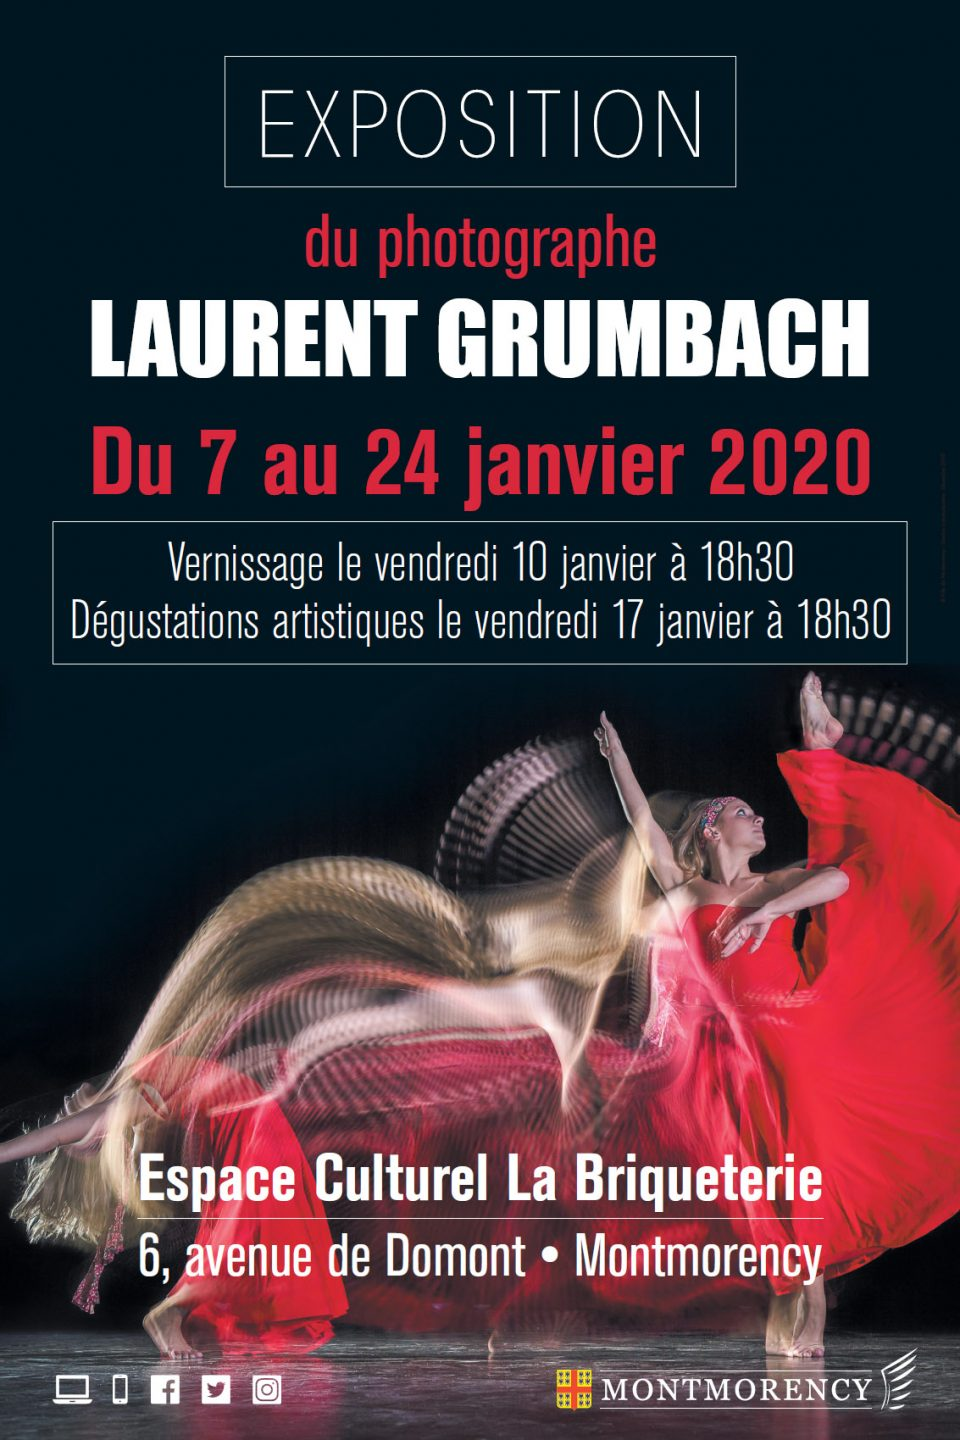 Affiche exposition Laurent Grumbach Montmorency 2020